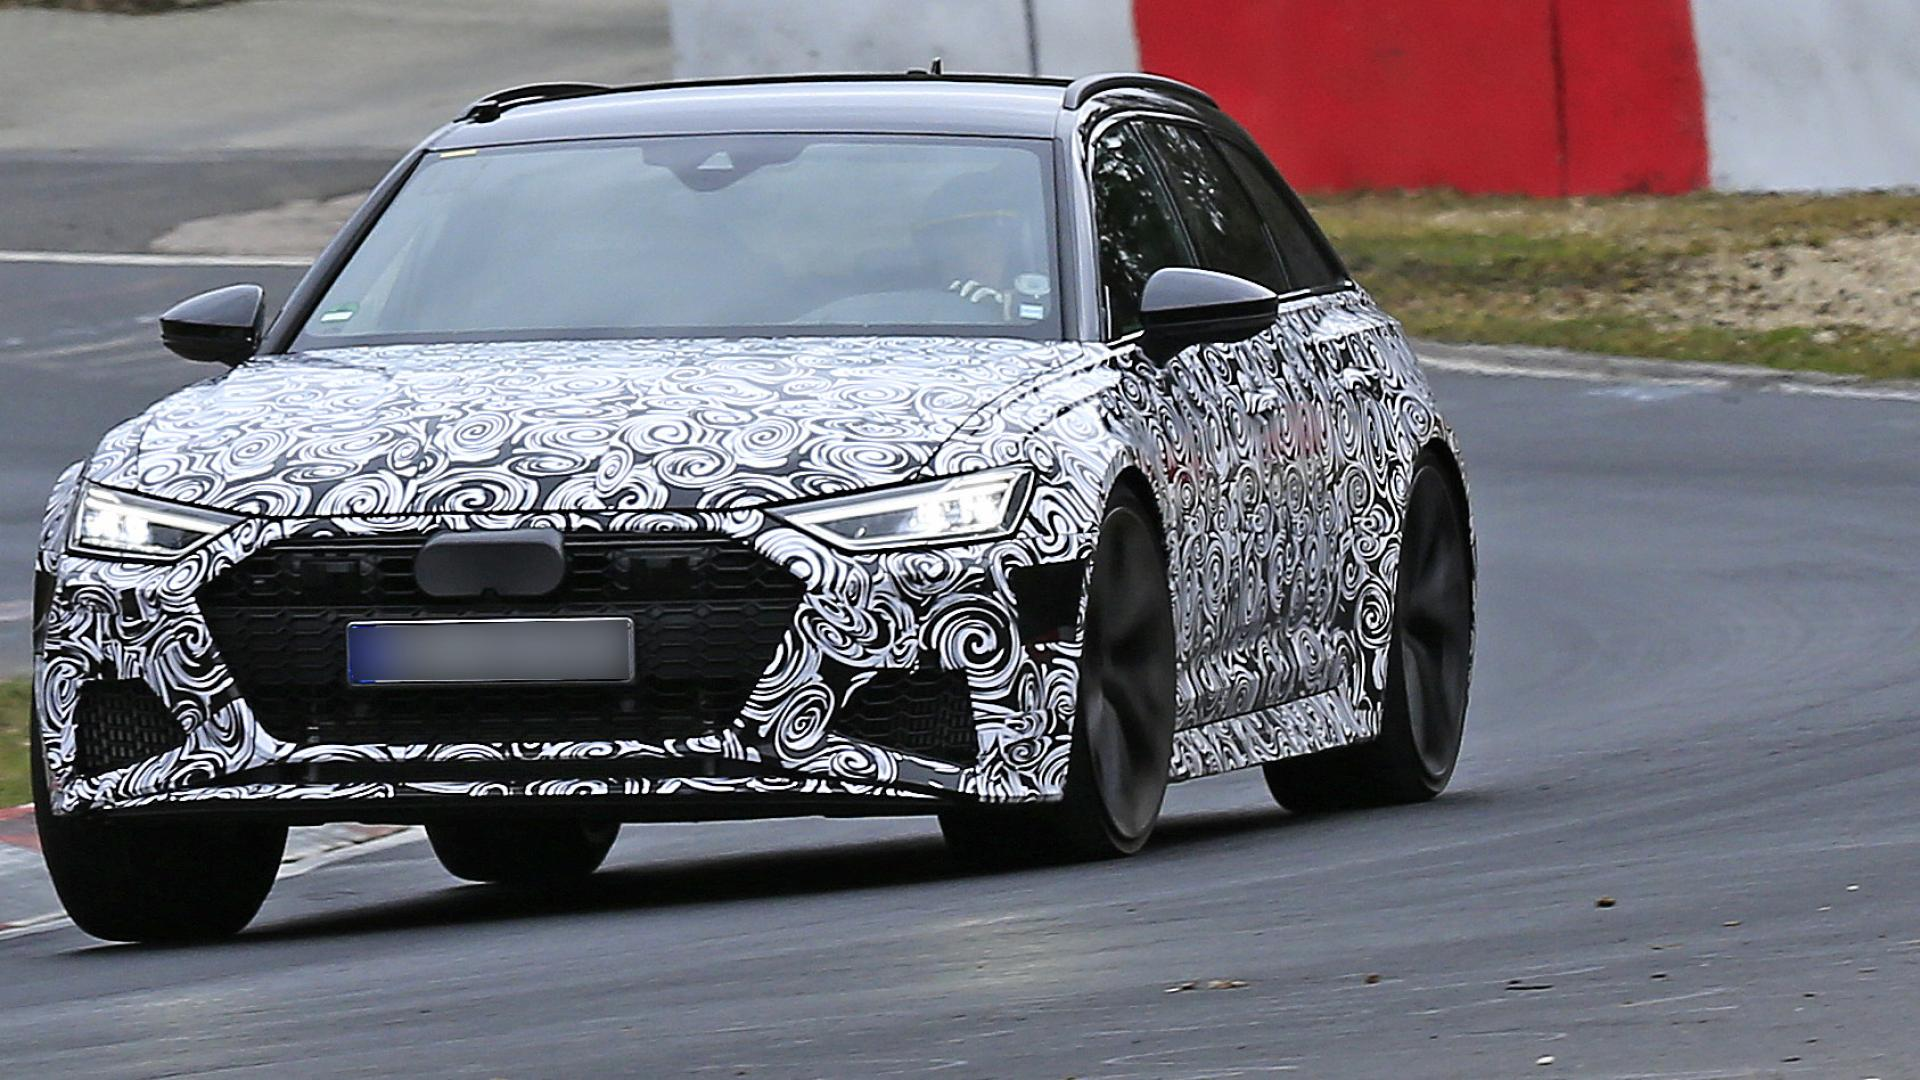 2020 Audi RS 6 Avant spy shots